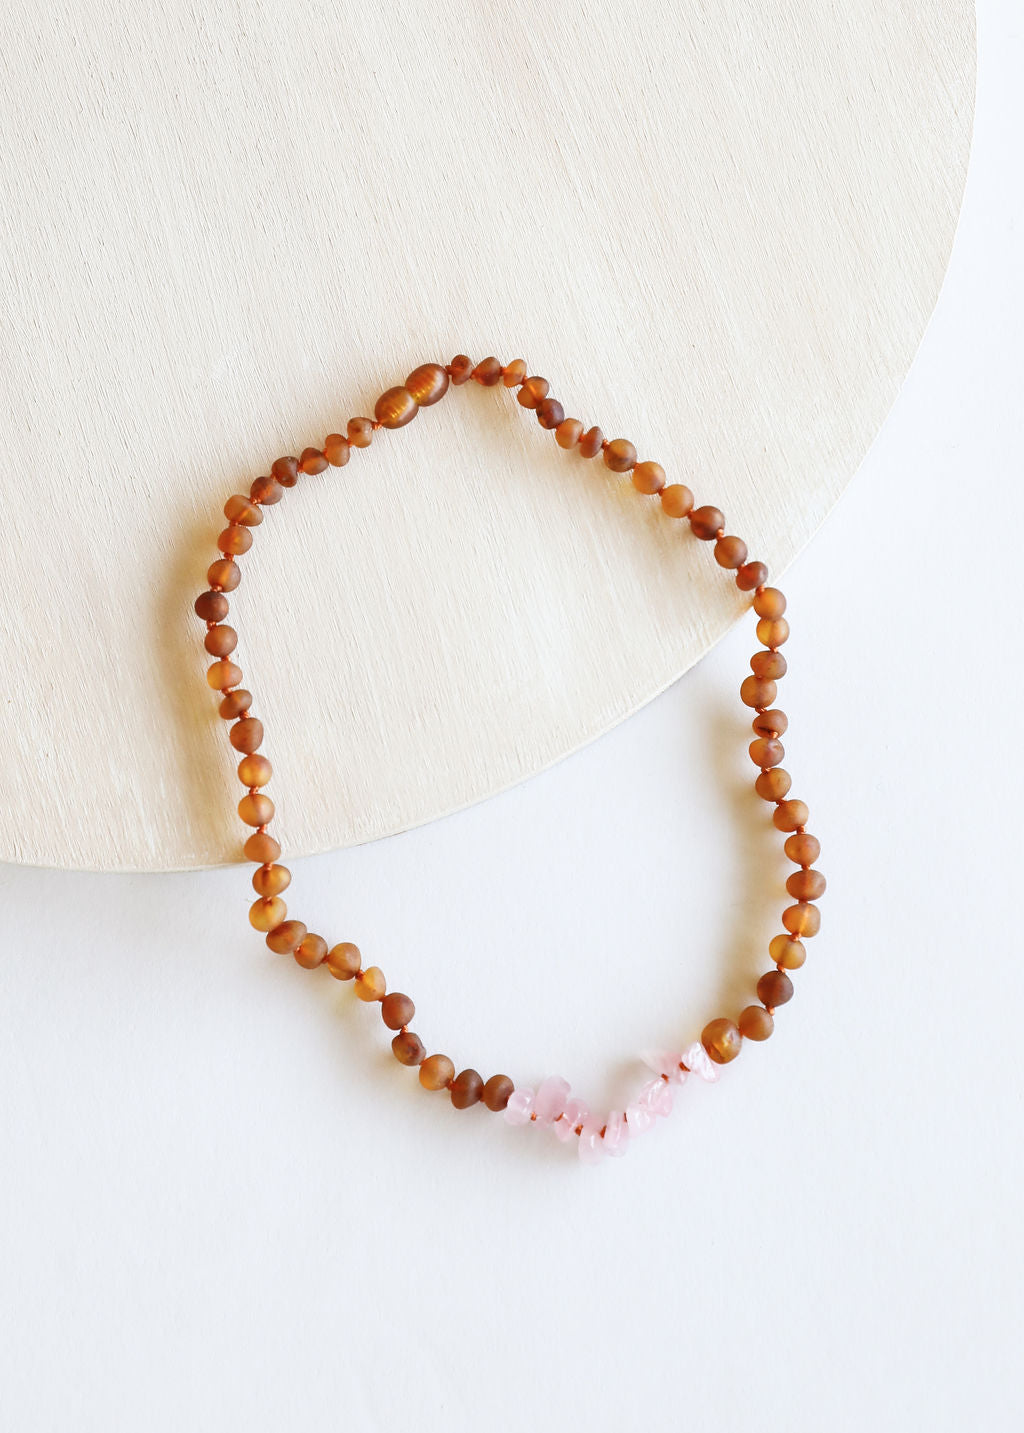 Raw Cognac Amber + Raw Pink Rose Quartz || Necklace